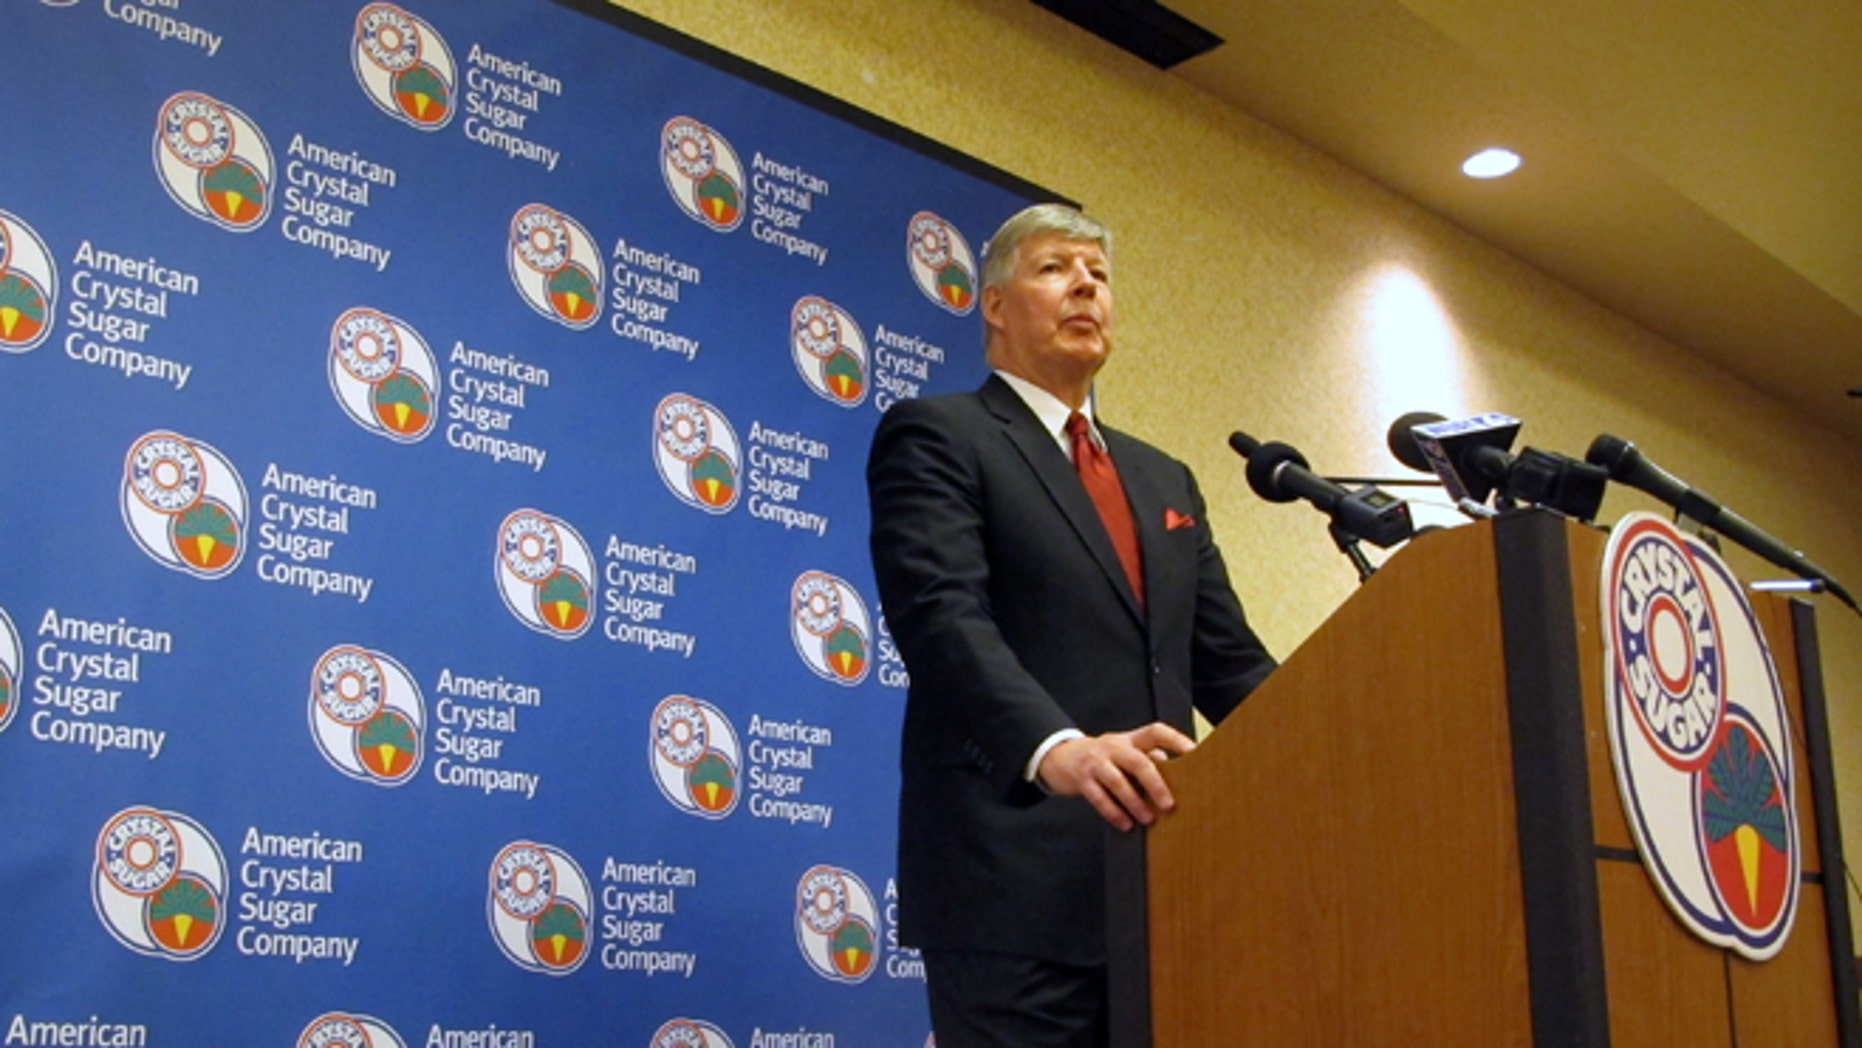 American Crystal Sugar Co. CEO David Berg speaks at a news conference during the cooperative's annual meeting in Fargo, N.D. on Thursday, Dec. 3, 2015. Berg says sugar prices are better than a year ago but the company is facing roadblocks from the anti-genetically modified foods movement and Texas Sen. Ted Cruz, who wants to do away with government assistance to sugar. (AP Photo/Dave Kolpack)